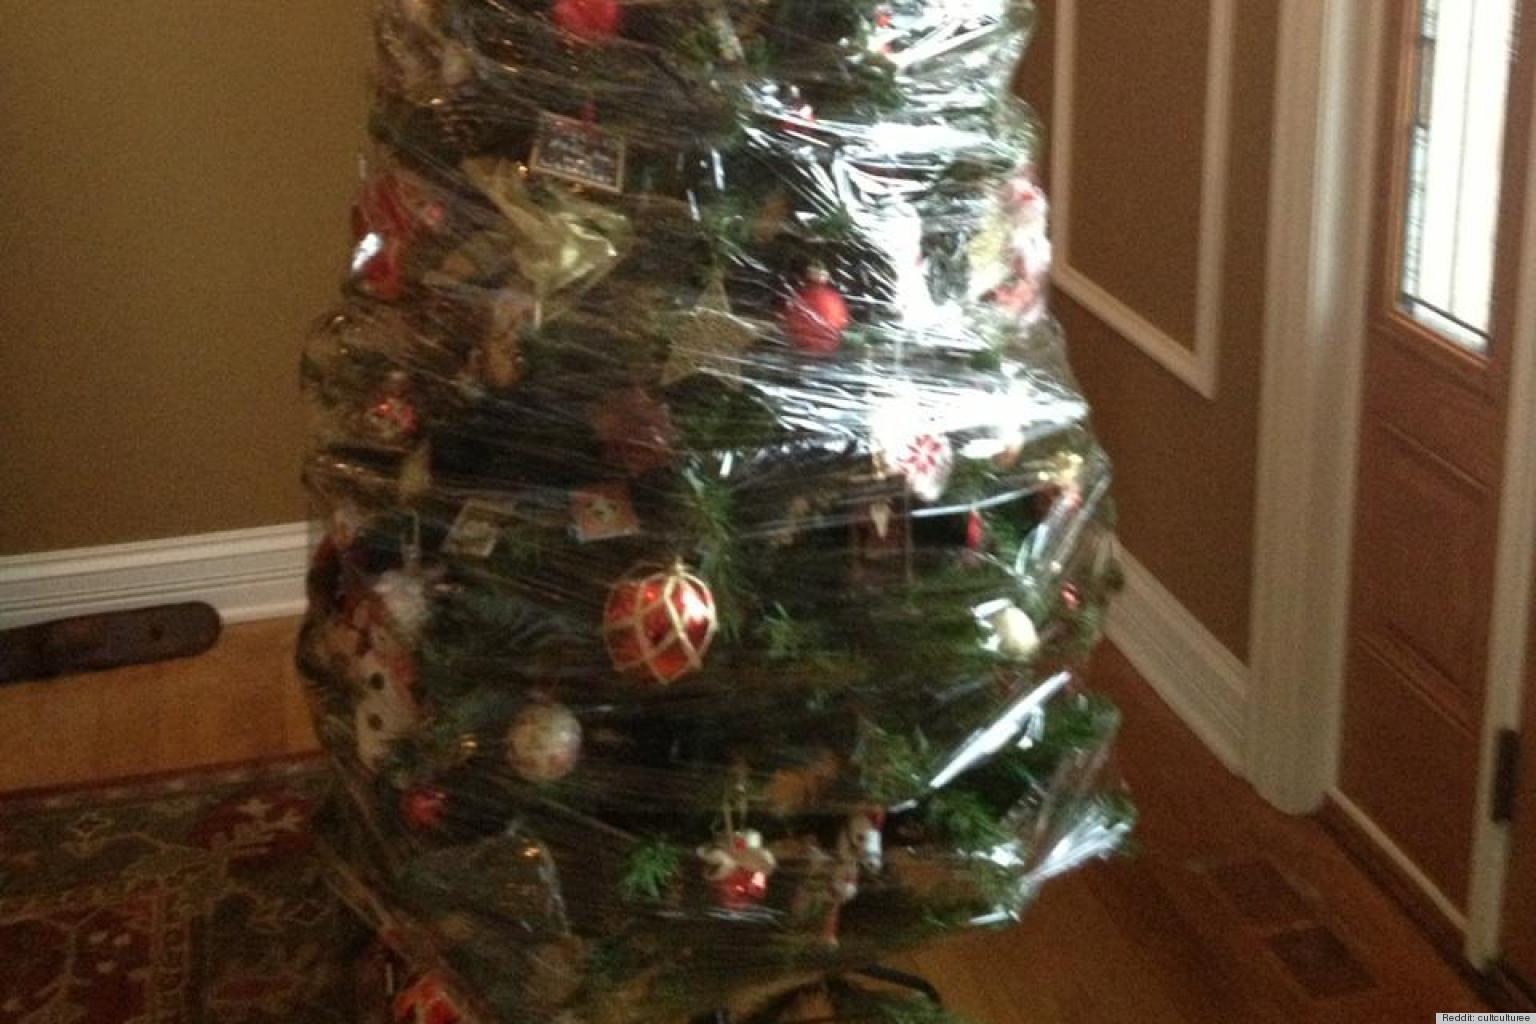 Is It Time To Take Down Your Christmas Tree Yet?